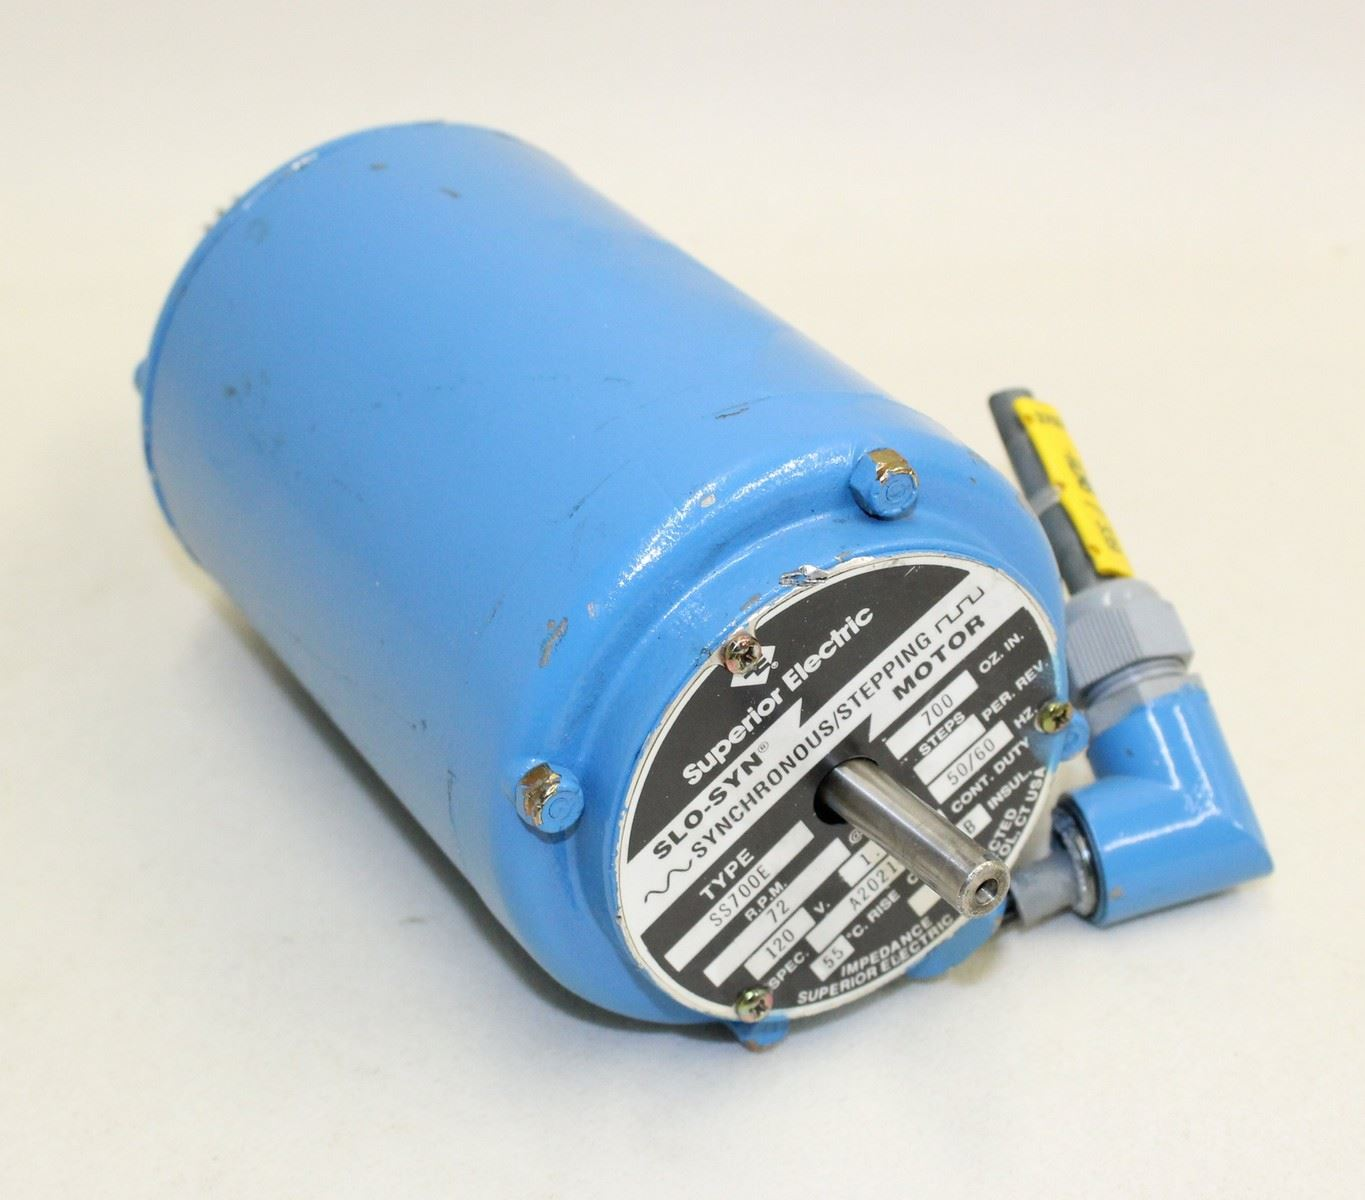 Superior Electric Slo Syn Synchronous Stepping Motor Ss700e 120v 1 1a 50 60hz Ebay